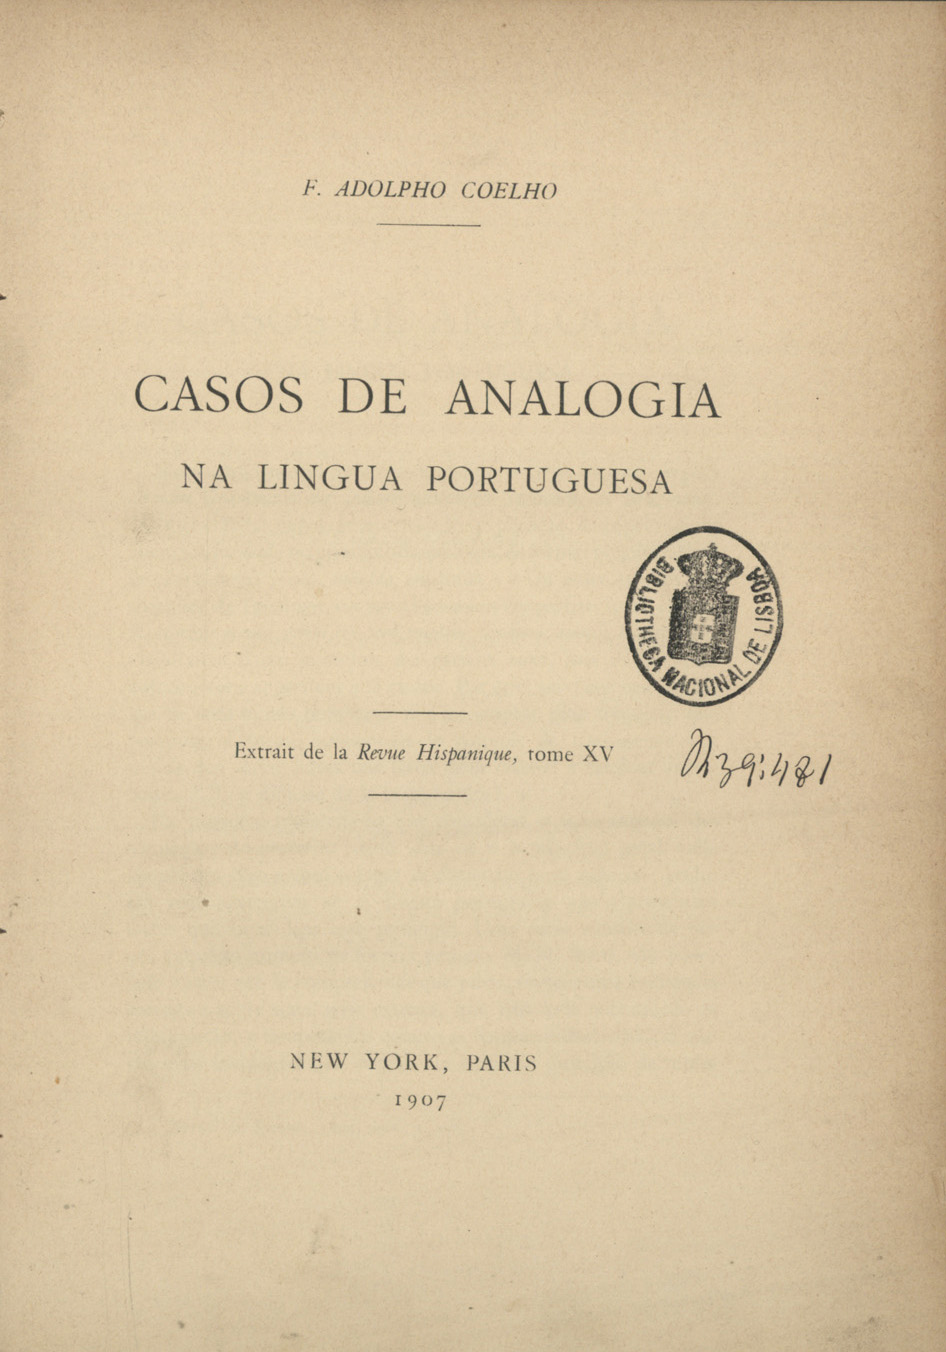 Cover of Casos de analogia na lingua portuguesa / F. Adolpho Coelho. - New York ;. - Paris : [s.n.], 1907. - 34 p. ; 21 cm